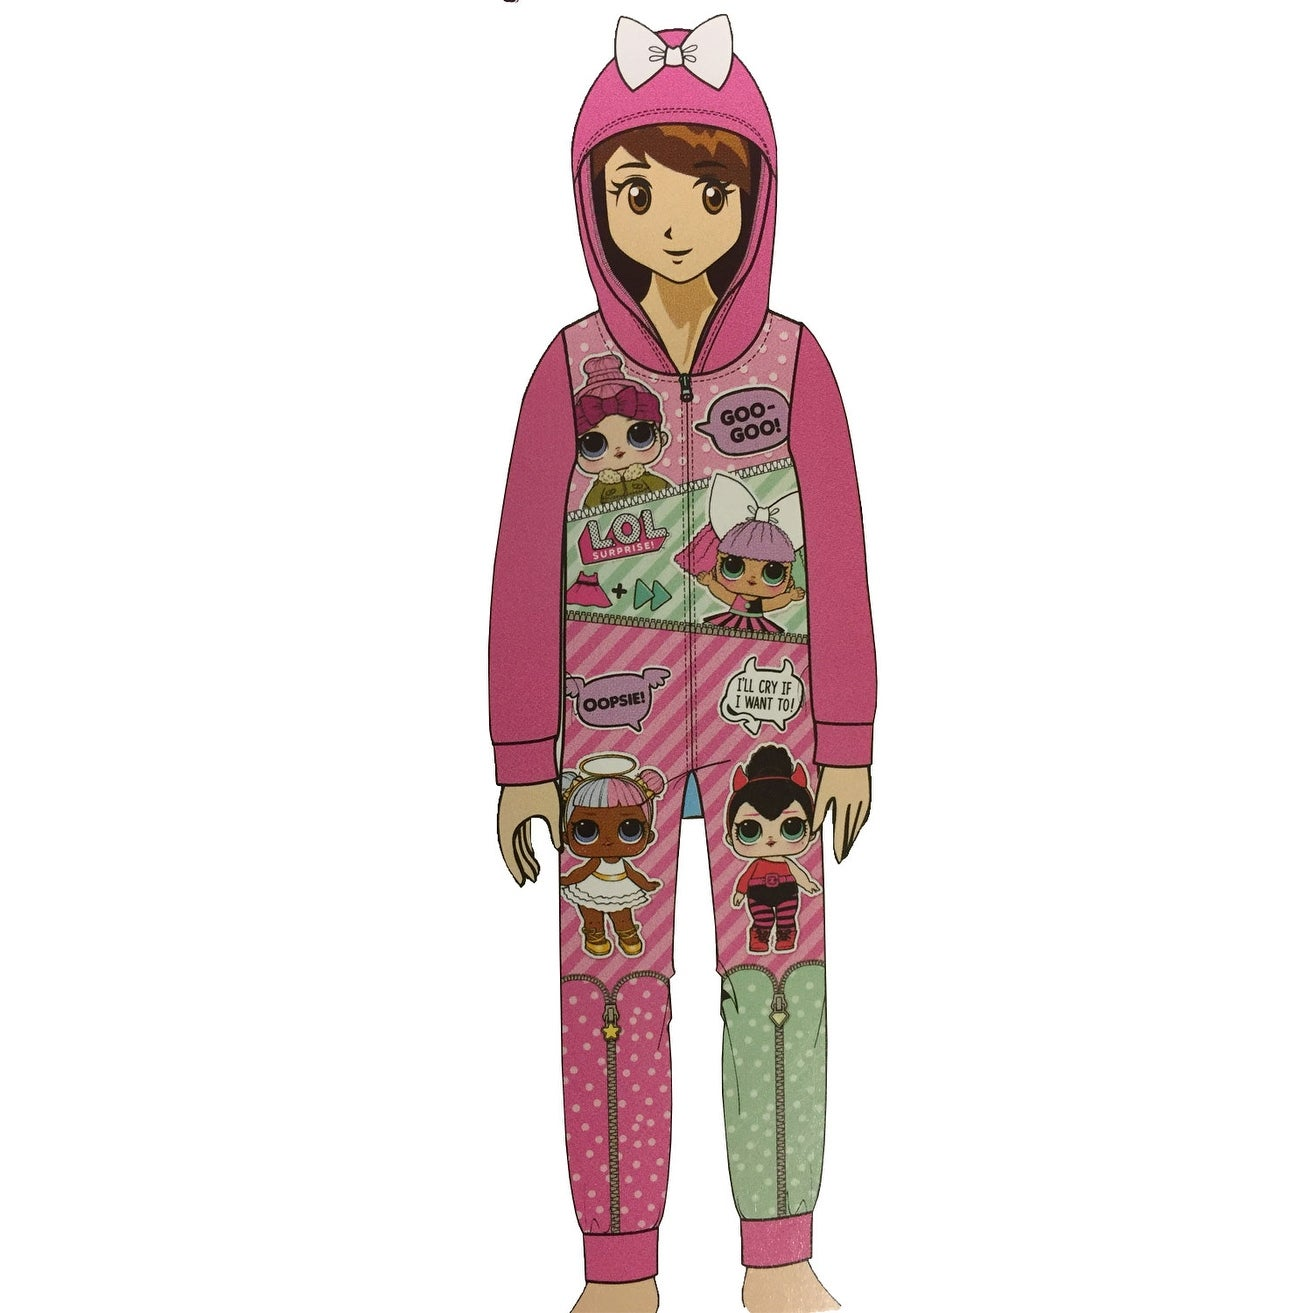 ed51a484d4 Girls  Fleece Blanket Sleeper Hooded Onesie Pajama - Free Shipping On  Orders Over  45 - Overstock - 23436634